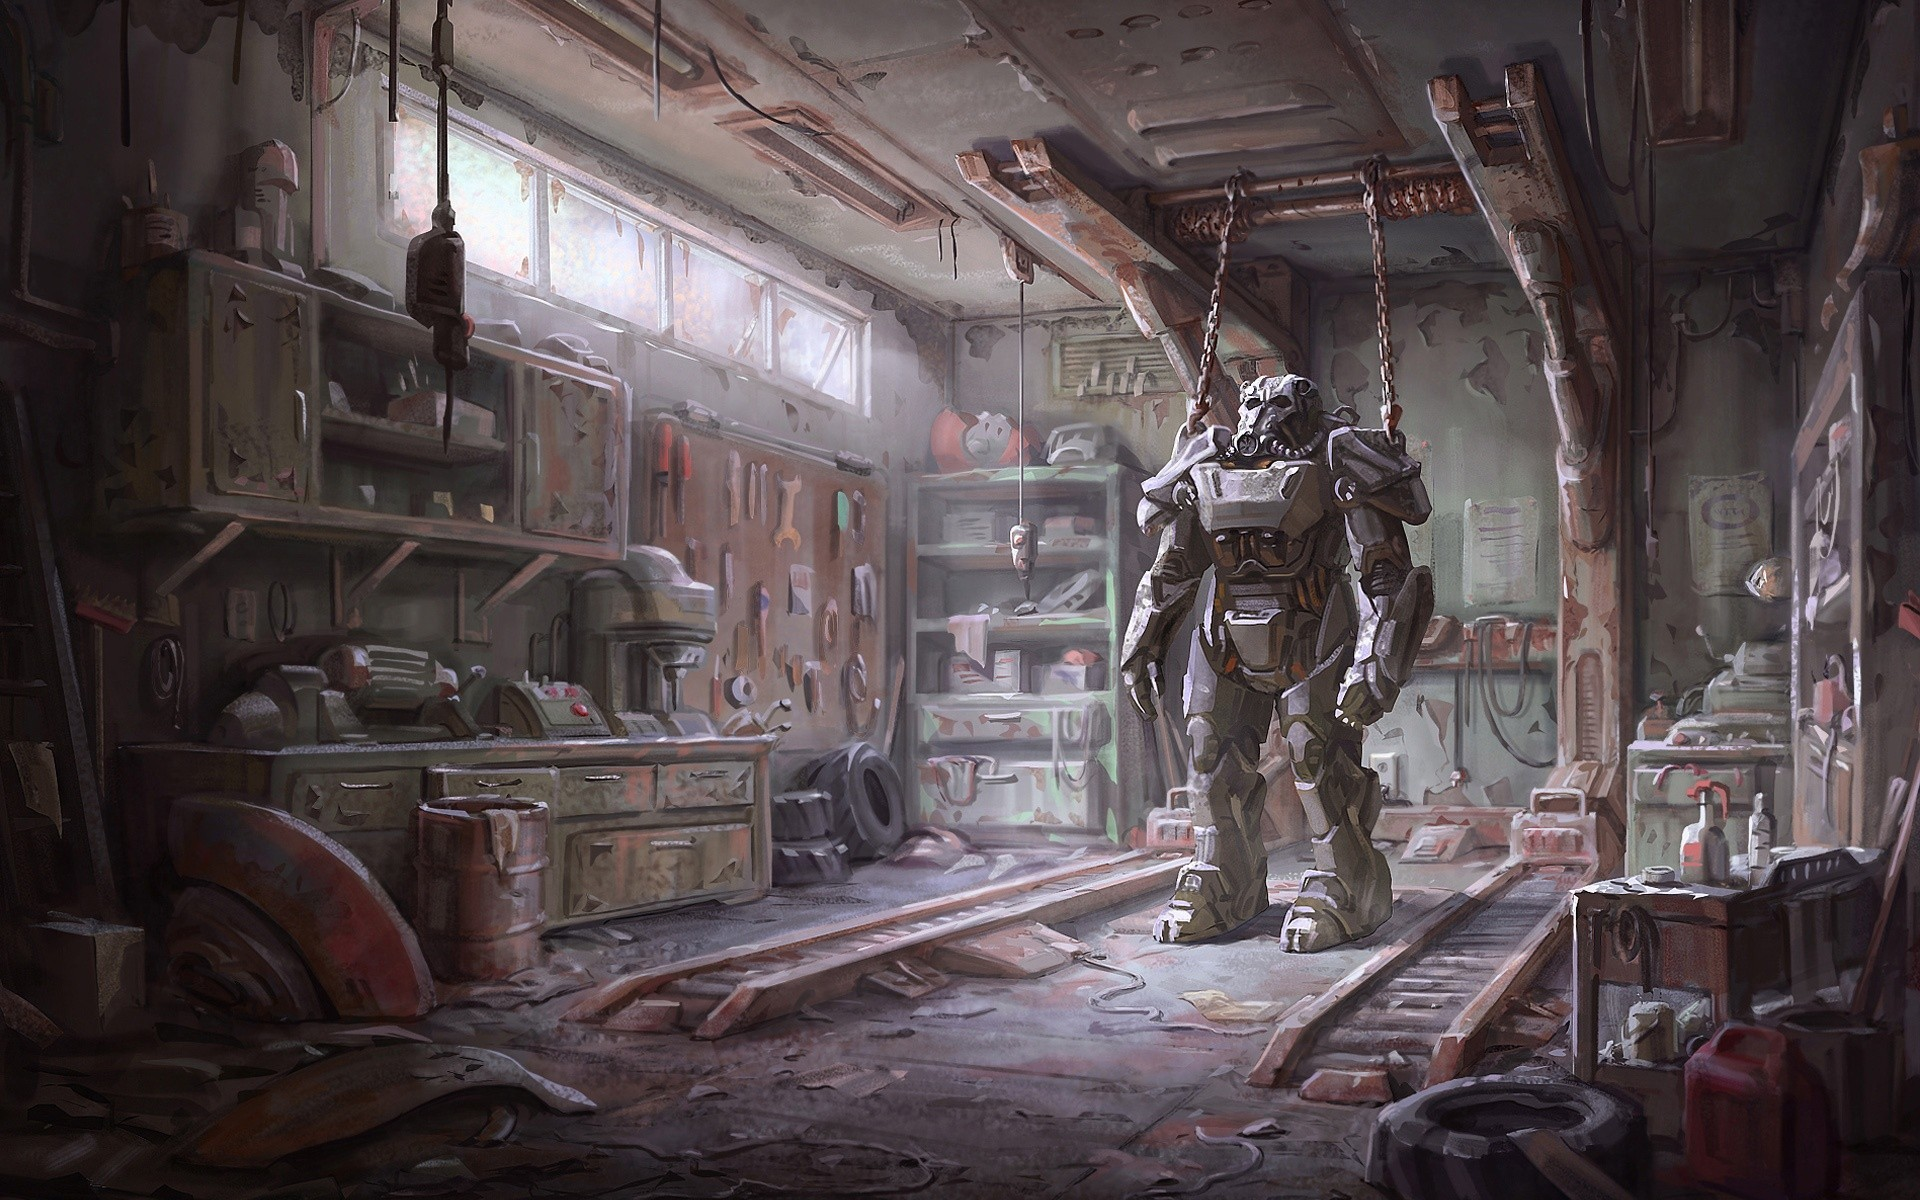 General Fallout 4 concept art Fallout video games Brotherhood of  Steel armor